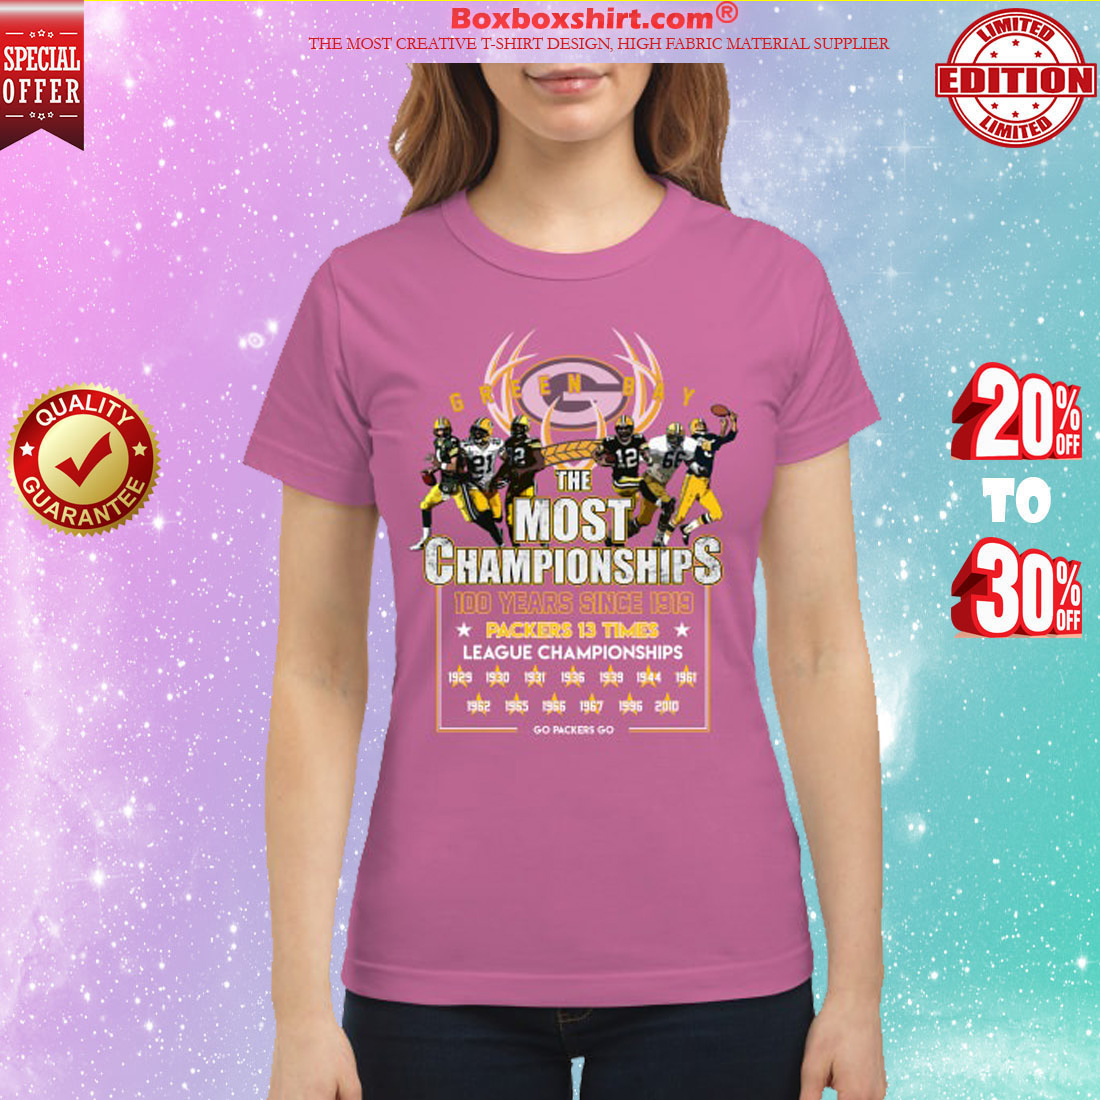 Green bay Packers the most championship 100 years classic shirt